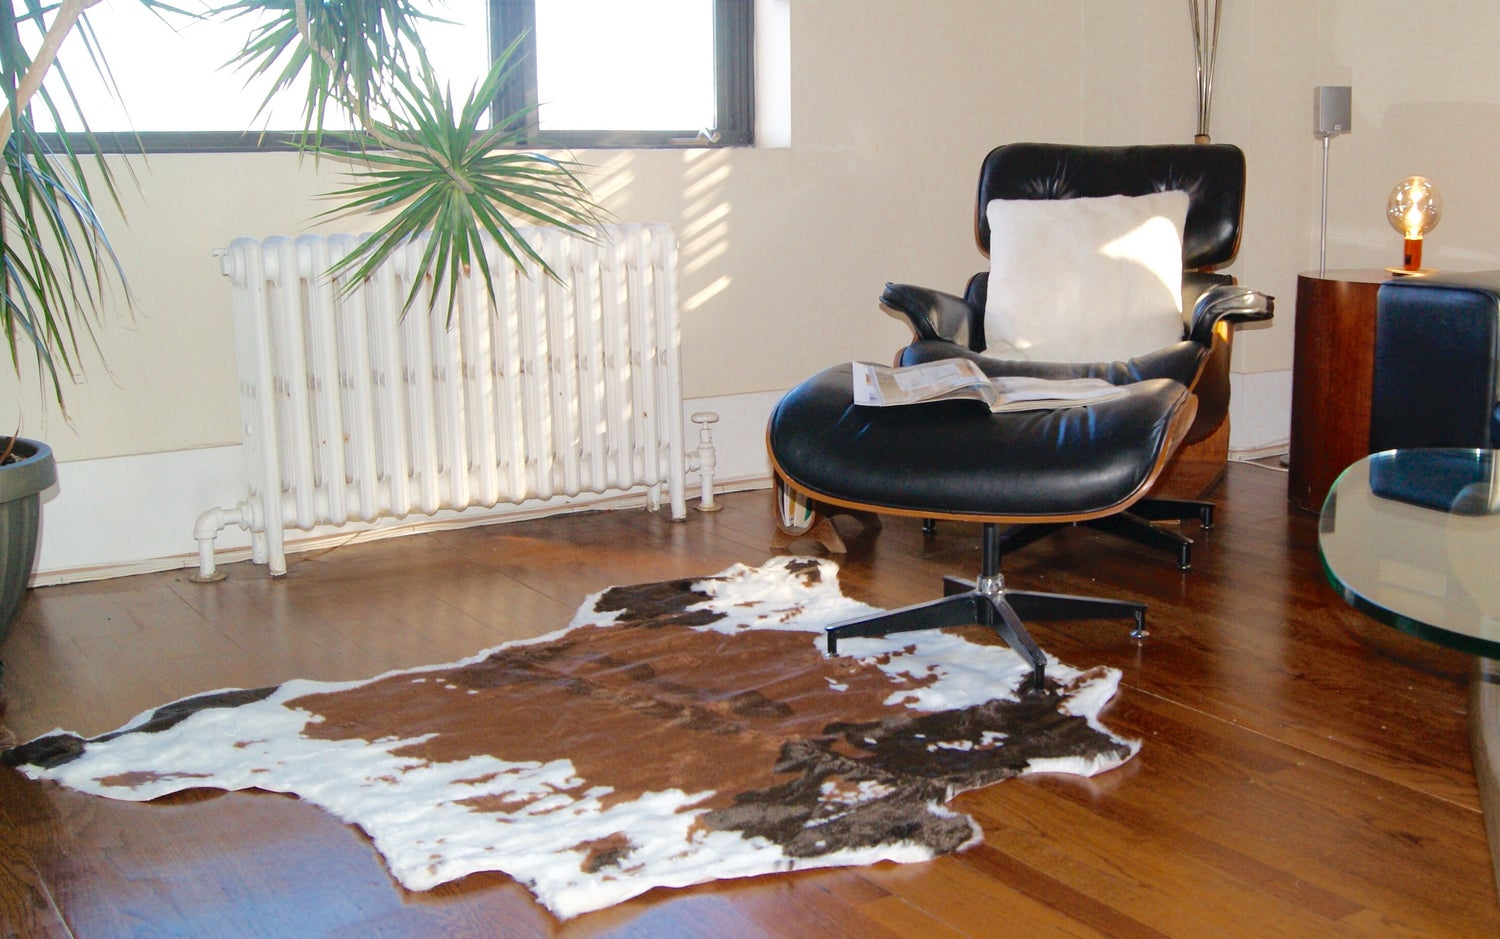 Image of El Paso Brownsville Choco Wht Faux Cowhide